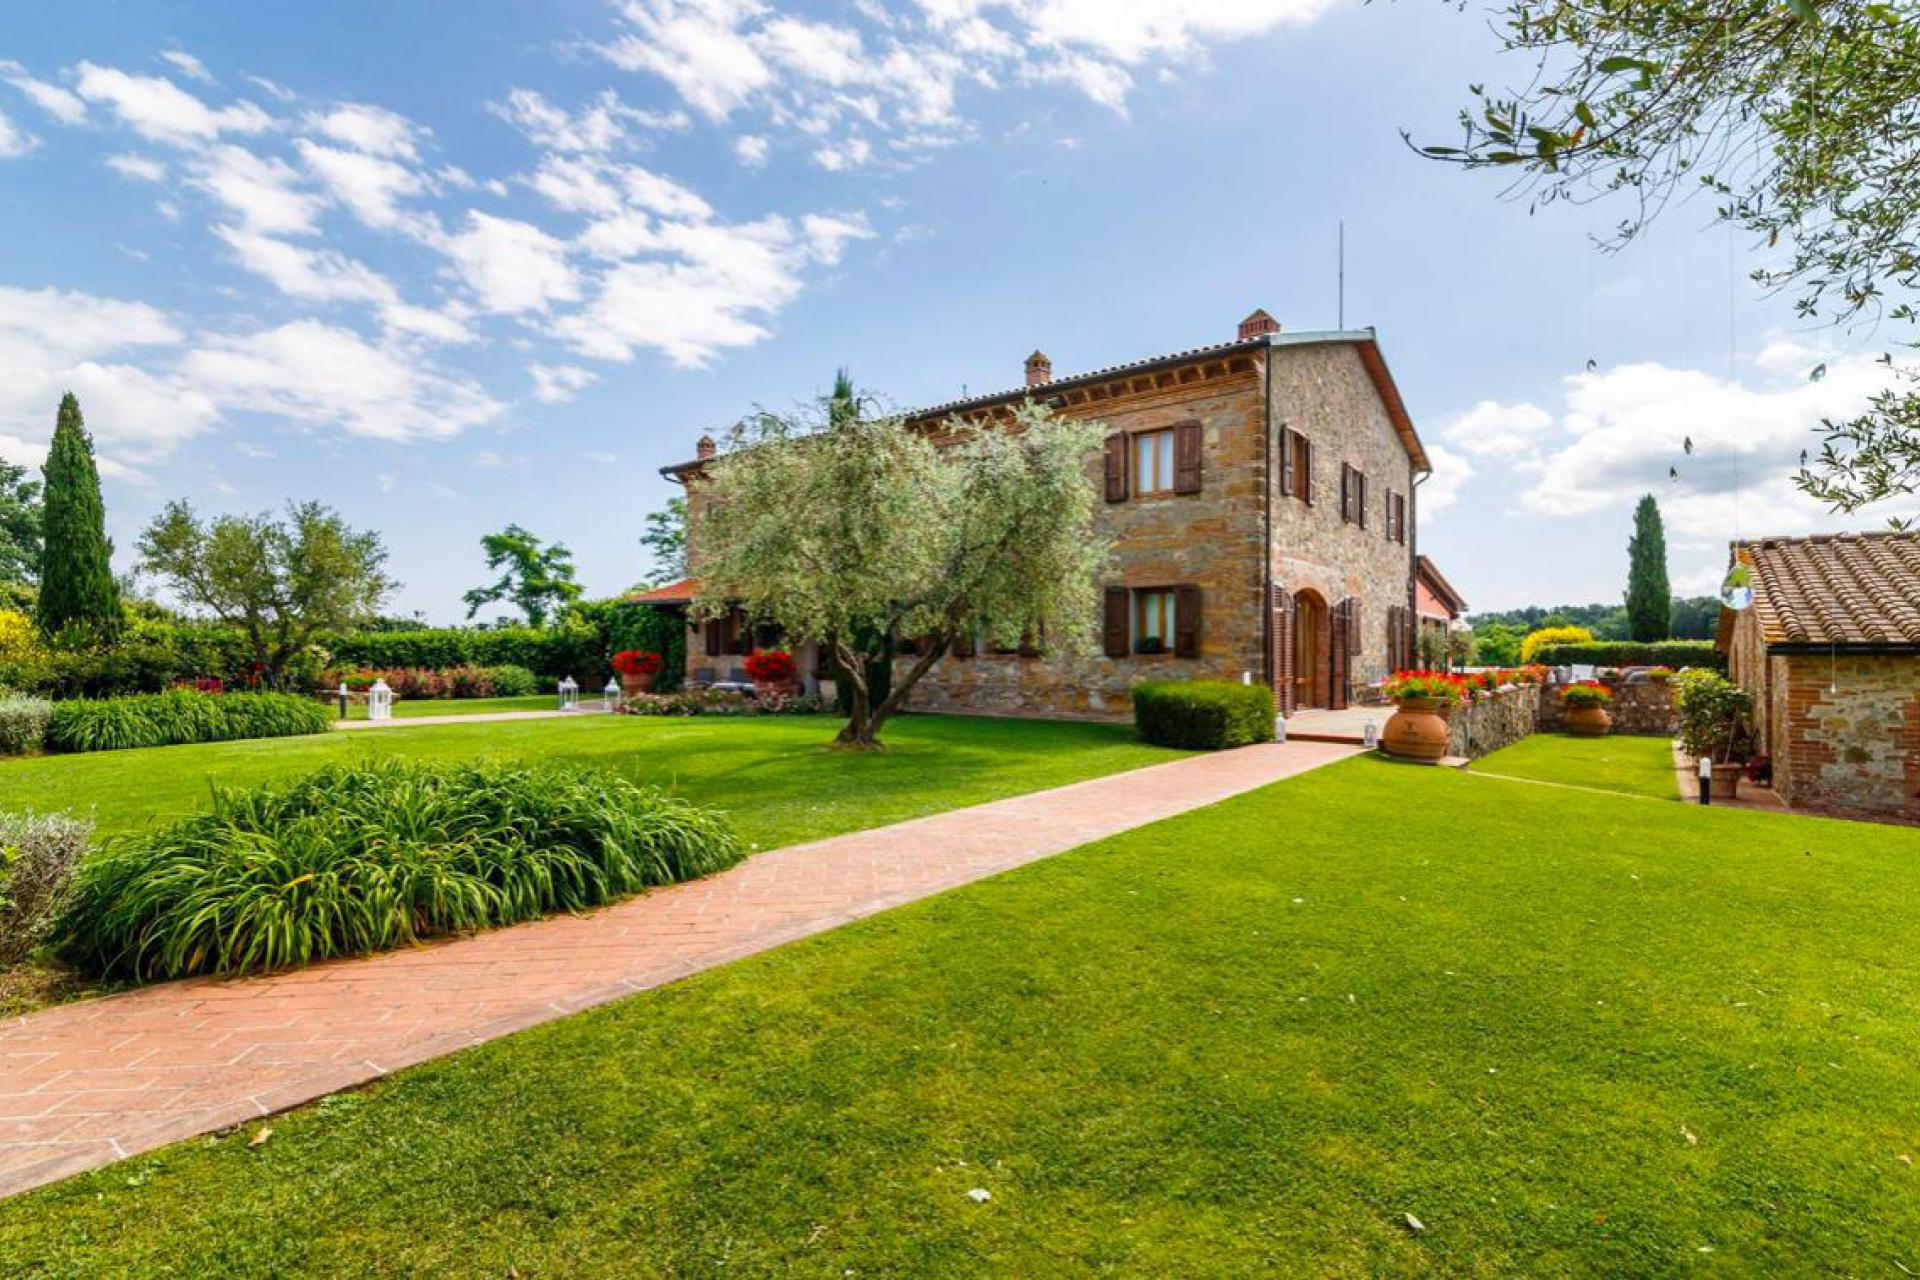 Agriturismo Toscane Grote agriturismo Toscane met zwembad | myitaly.nl